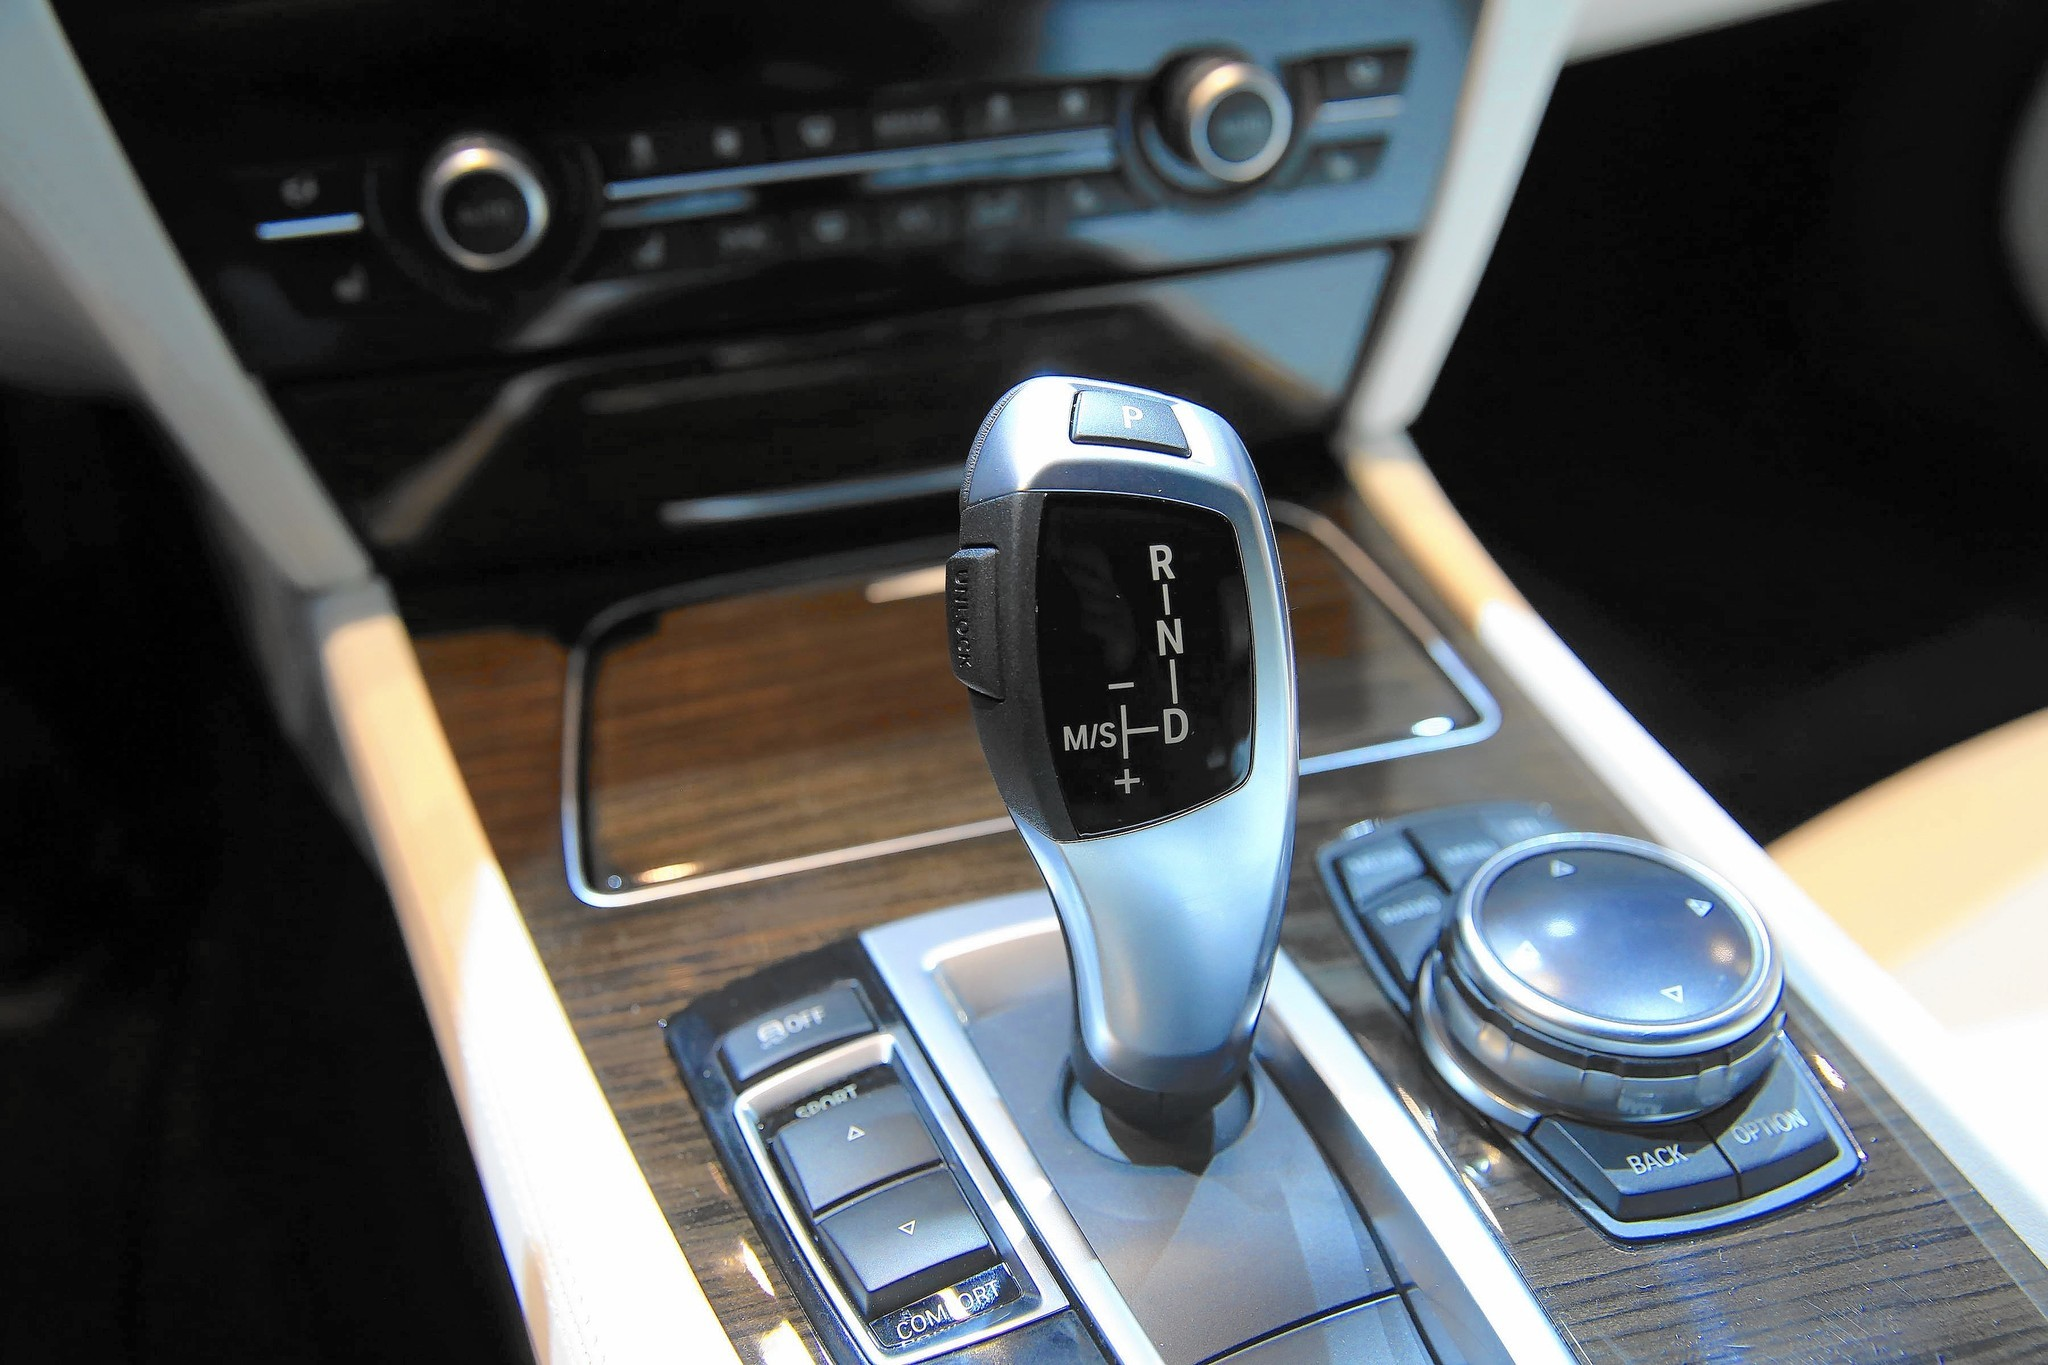 Five Worst New Car Features Reinvent The Wheel For No Reason Chicago Tribune